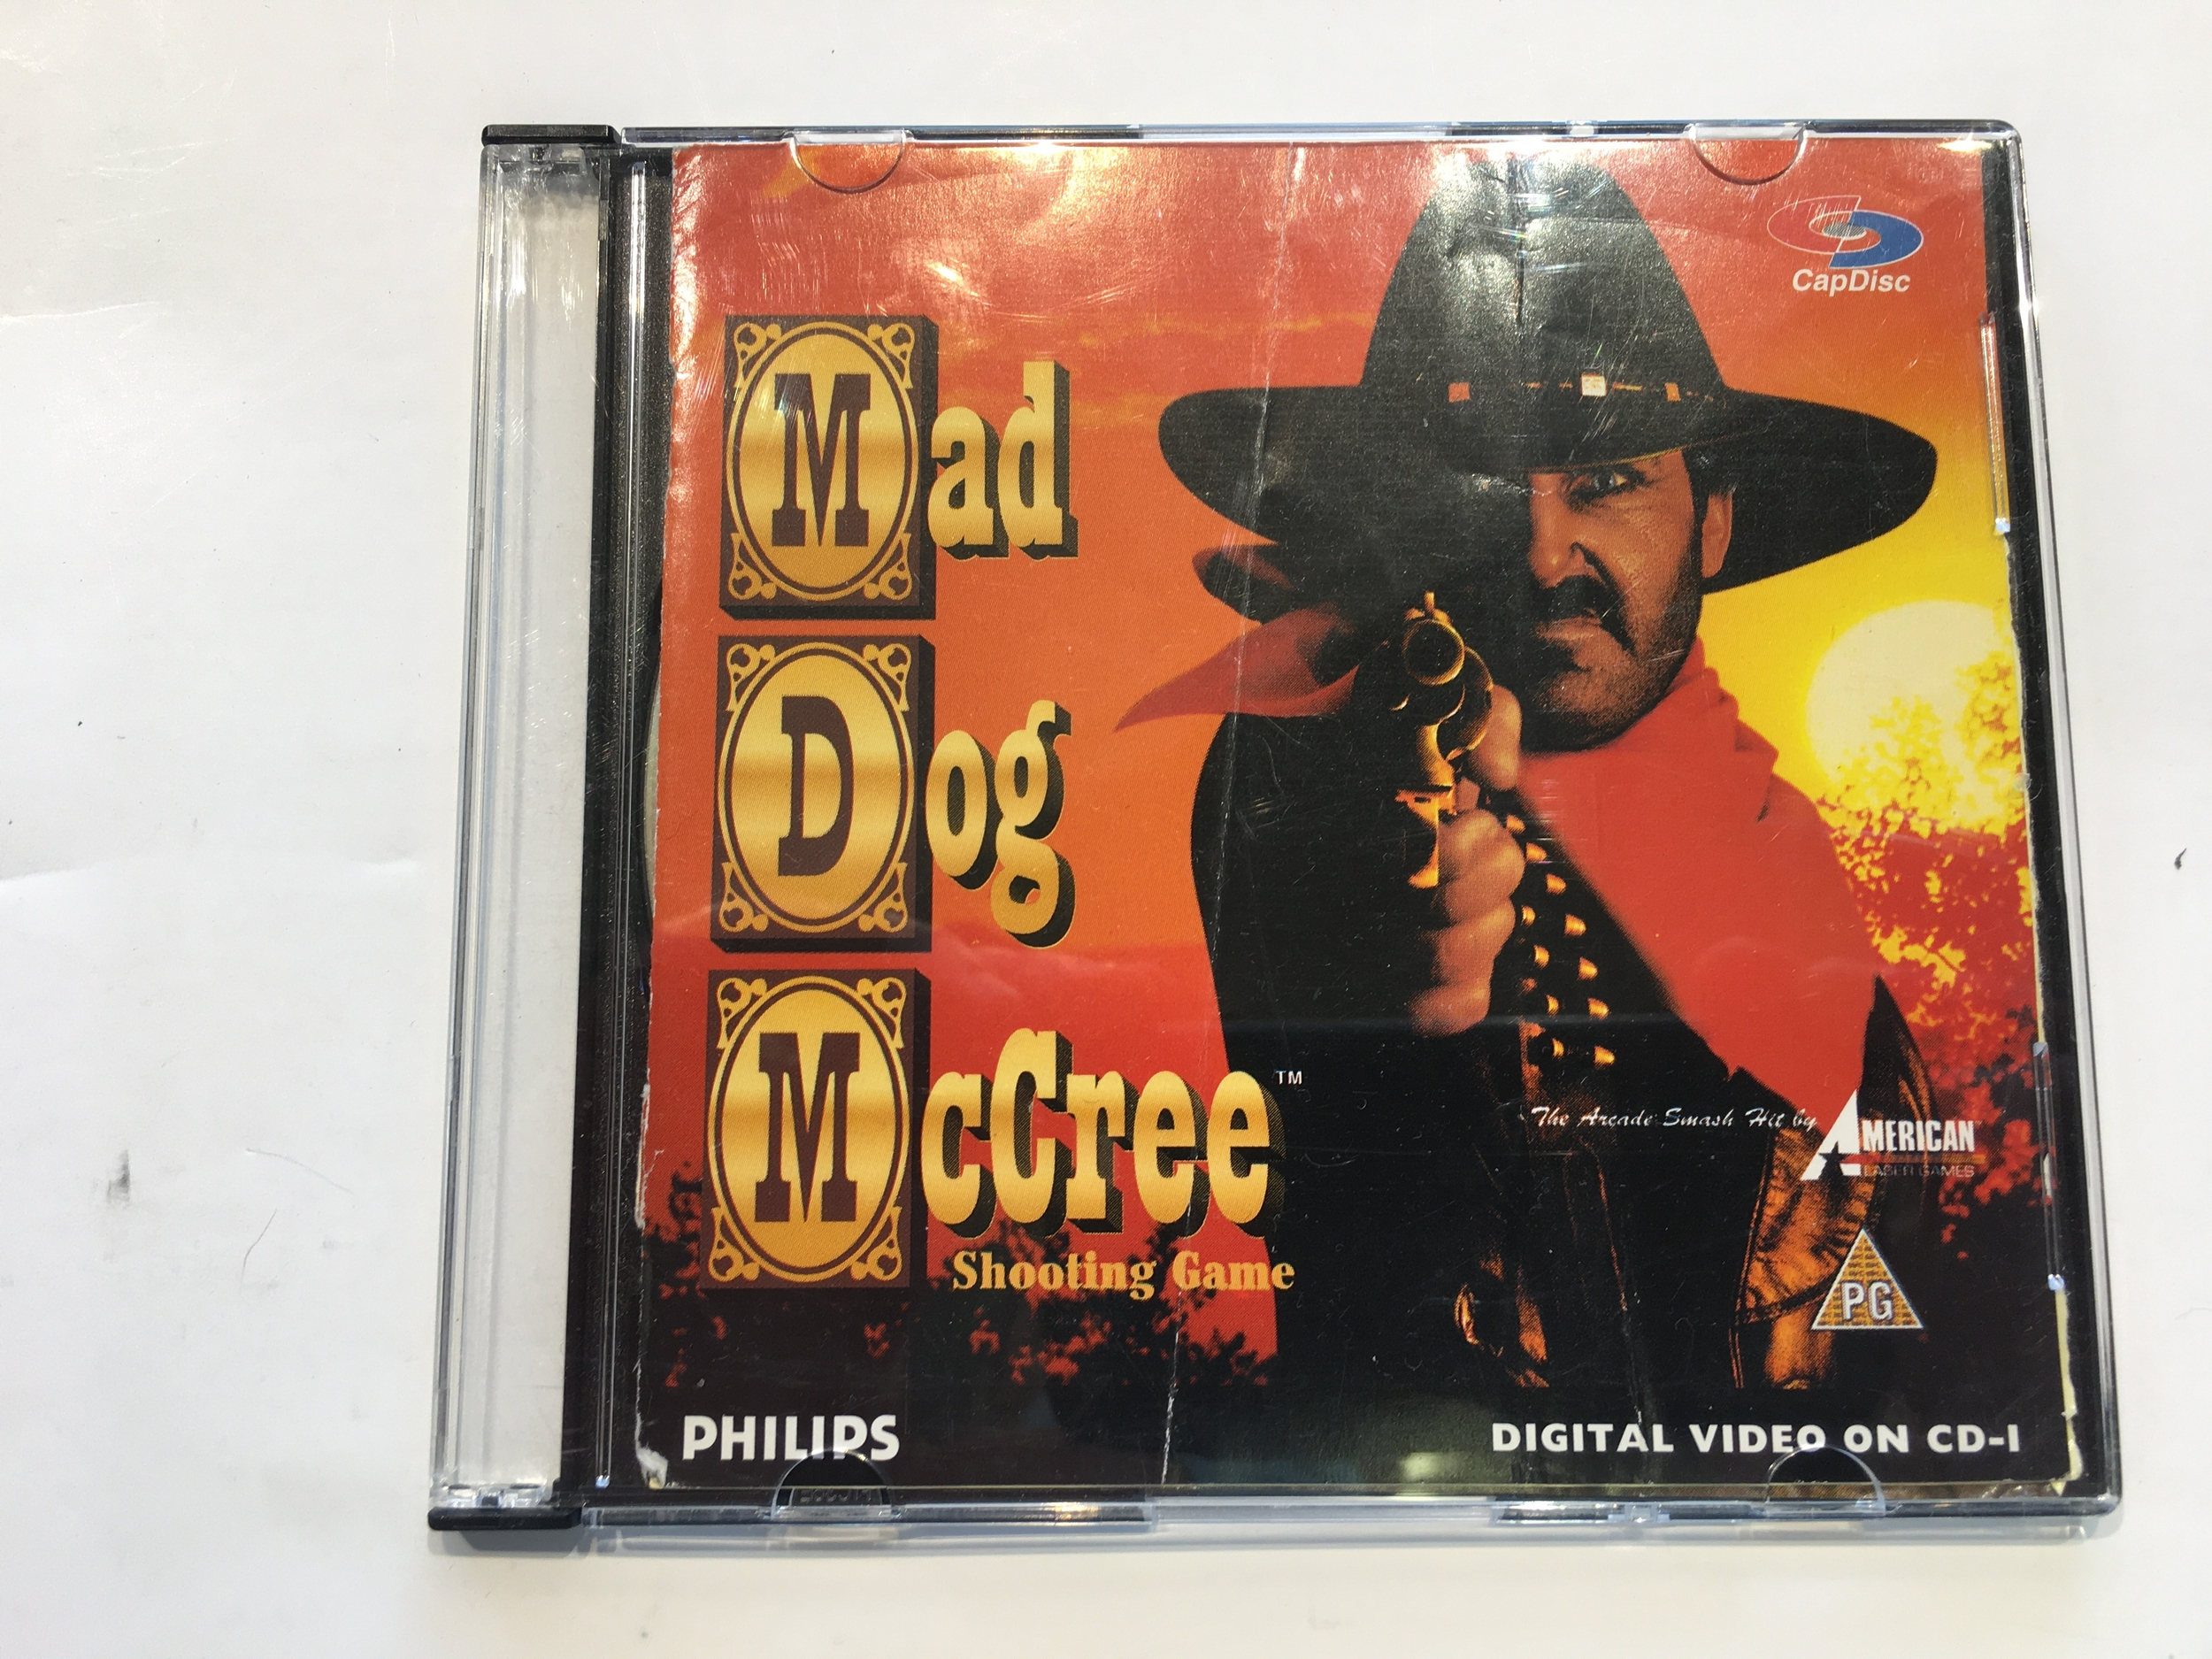 Mad Dogs McCree CD-i